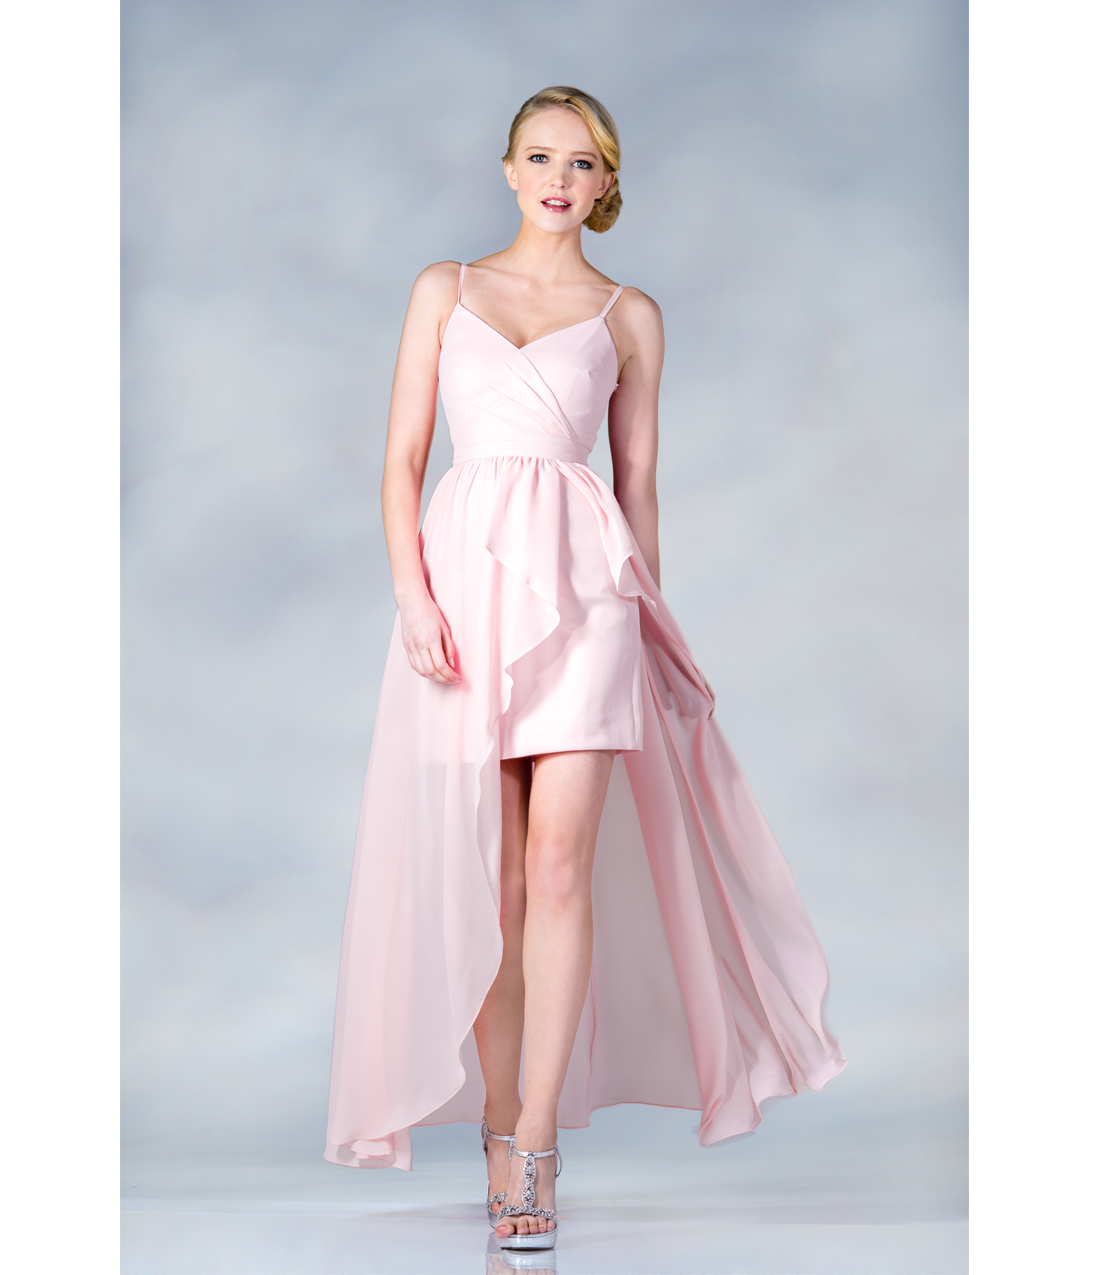 2013 Prom Dresses- Baby Pink High-Low Chiffon Prom Dress - Unique ...